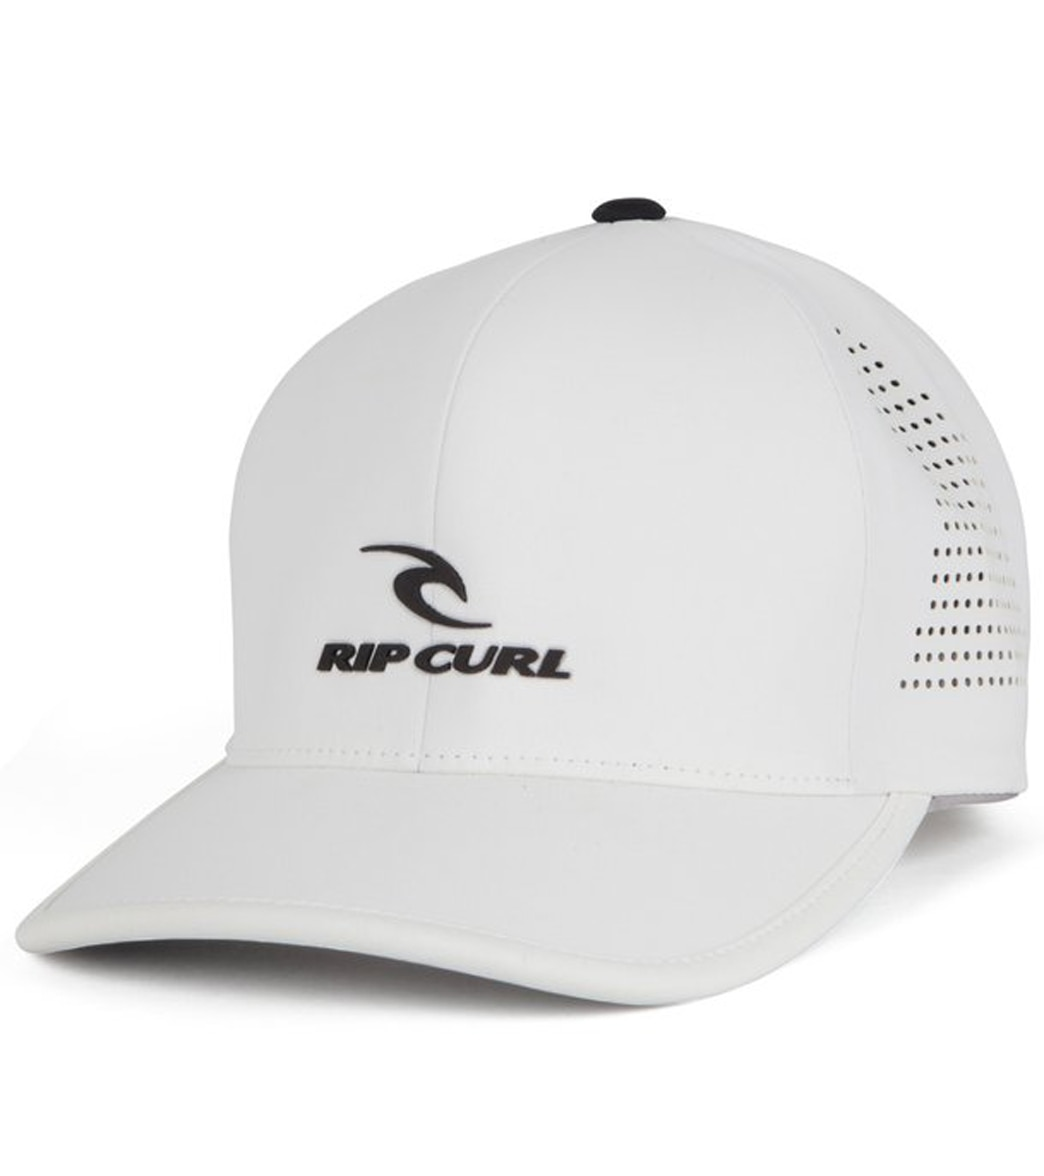 Rip Curl Men s Covert Delta Flexfit Hat at SwimOutlet.com 7a9bd1092364